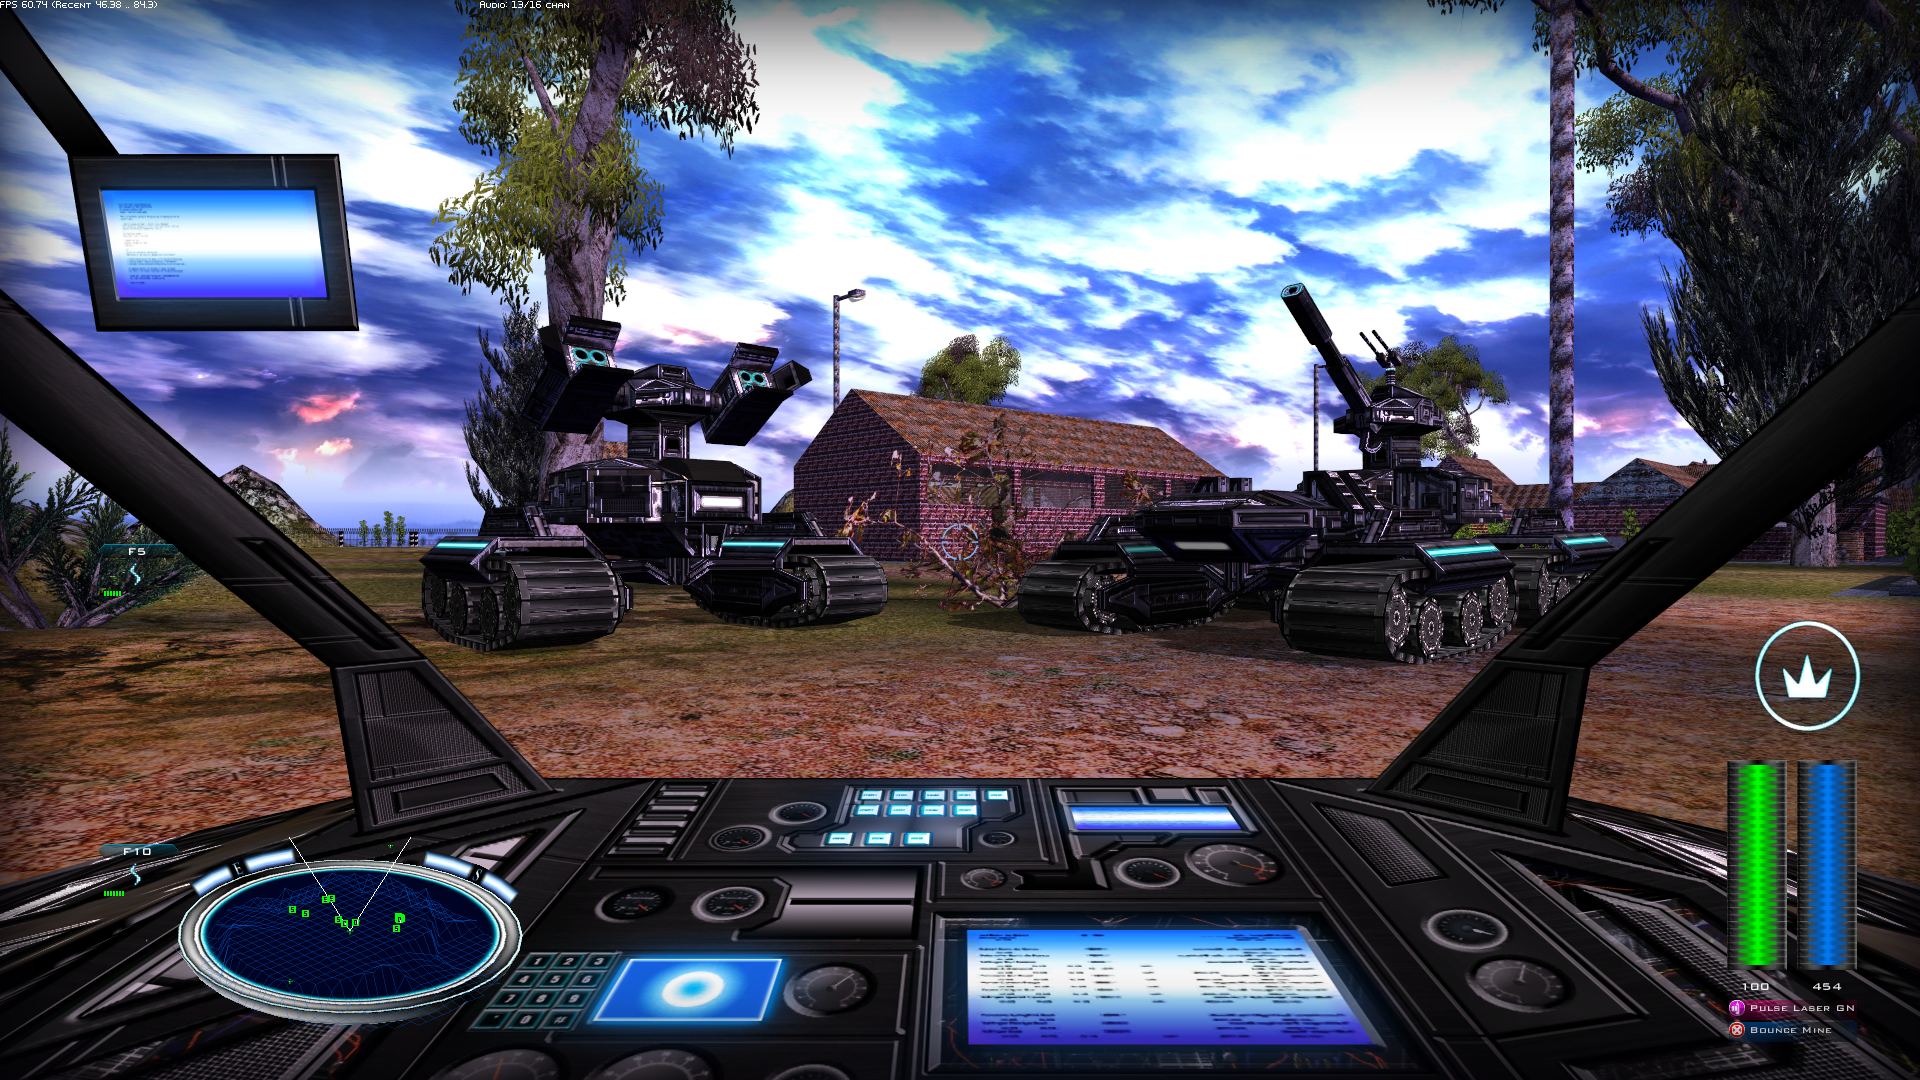 More graphical enhancements image qf2 essence to a for Battlezone 2